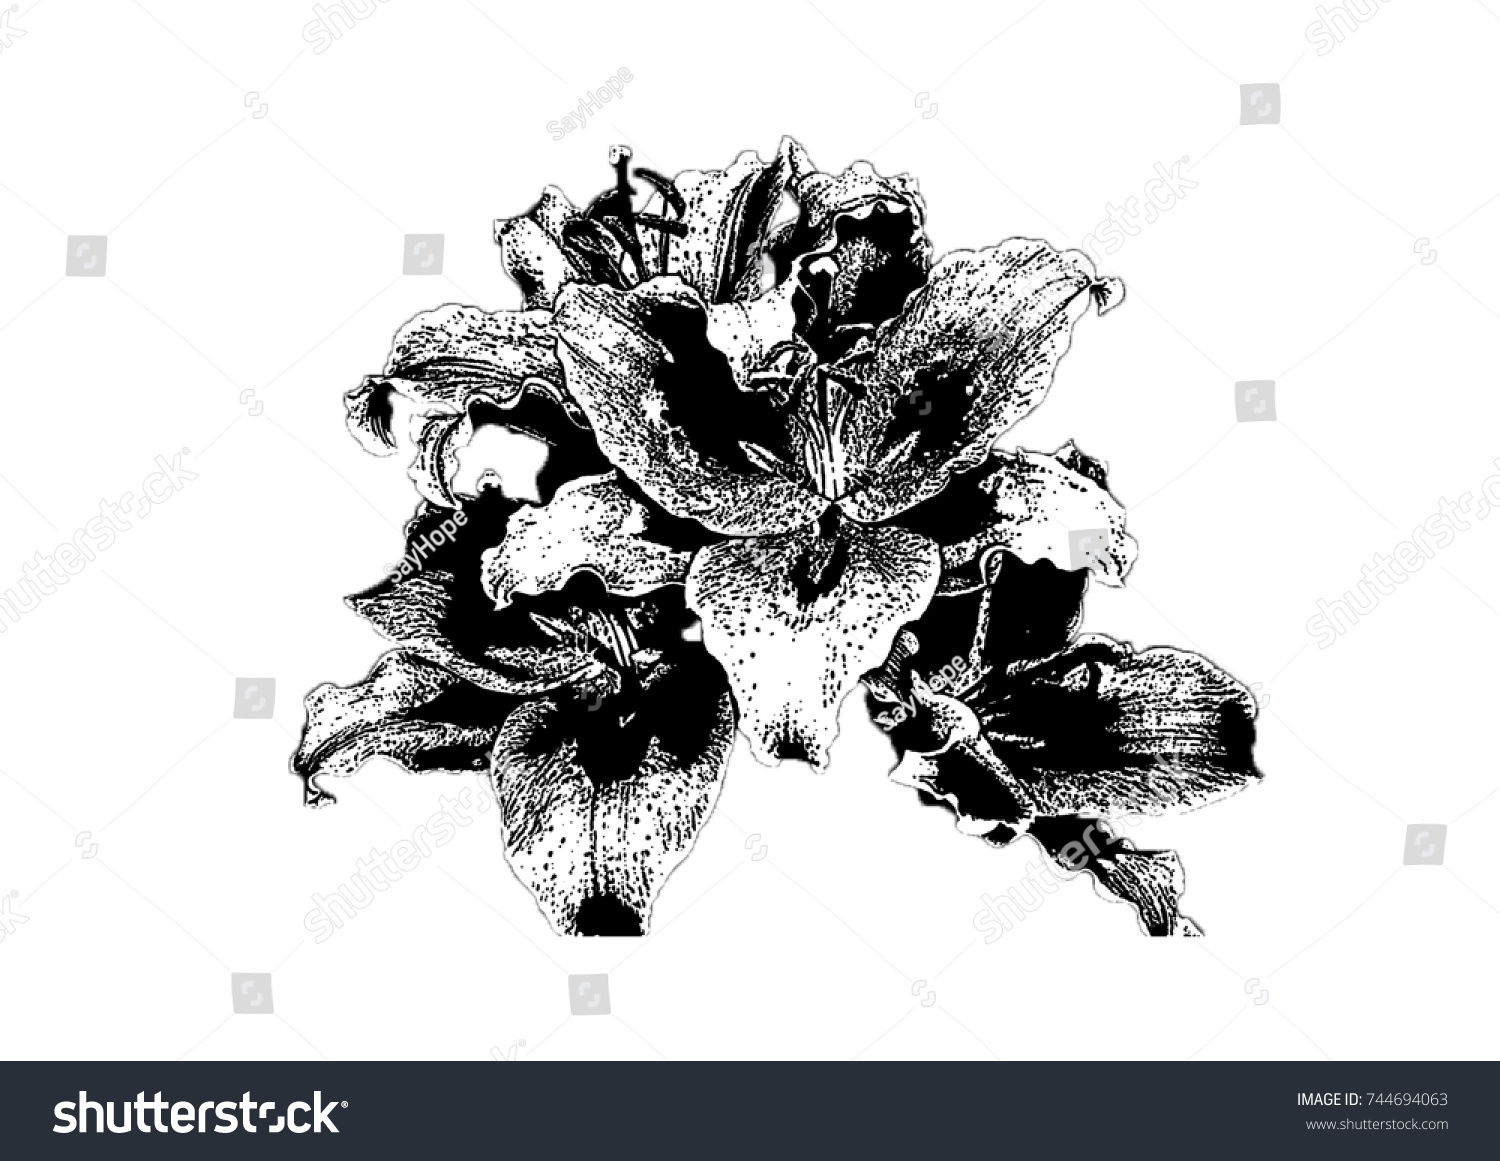 Sketch lily flower stock illustration royalty free stock sketch of a lily flower izmirmasajfo